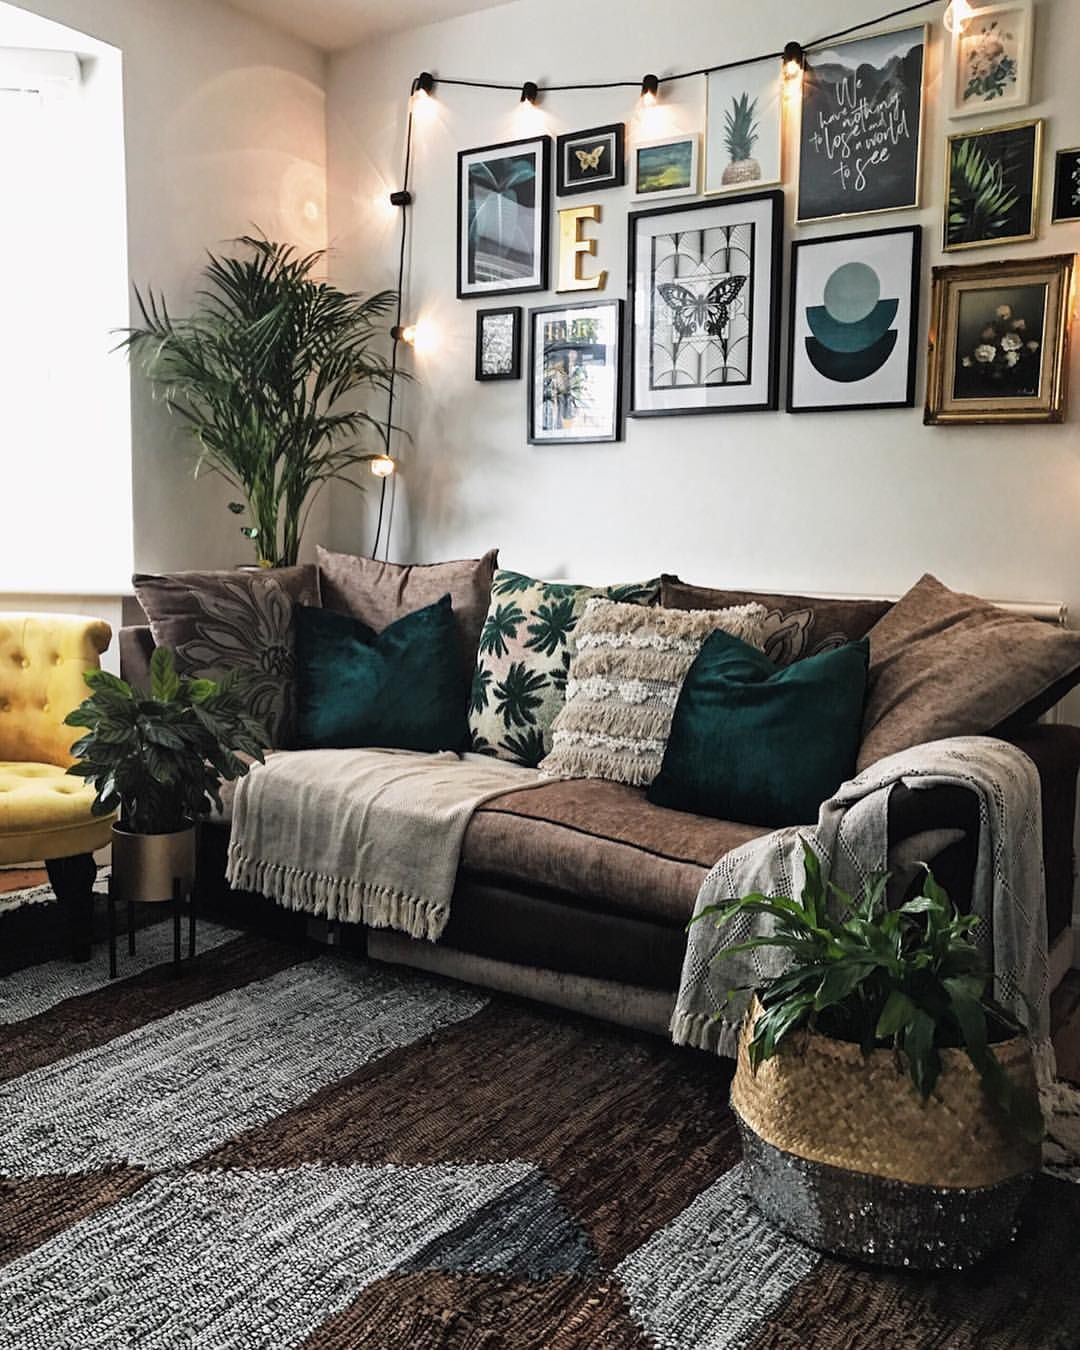 Pin By Amber May On Apartment Farm House Living Room Living Room Green Brown Couch Living Room